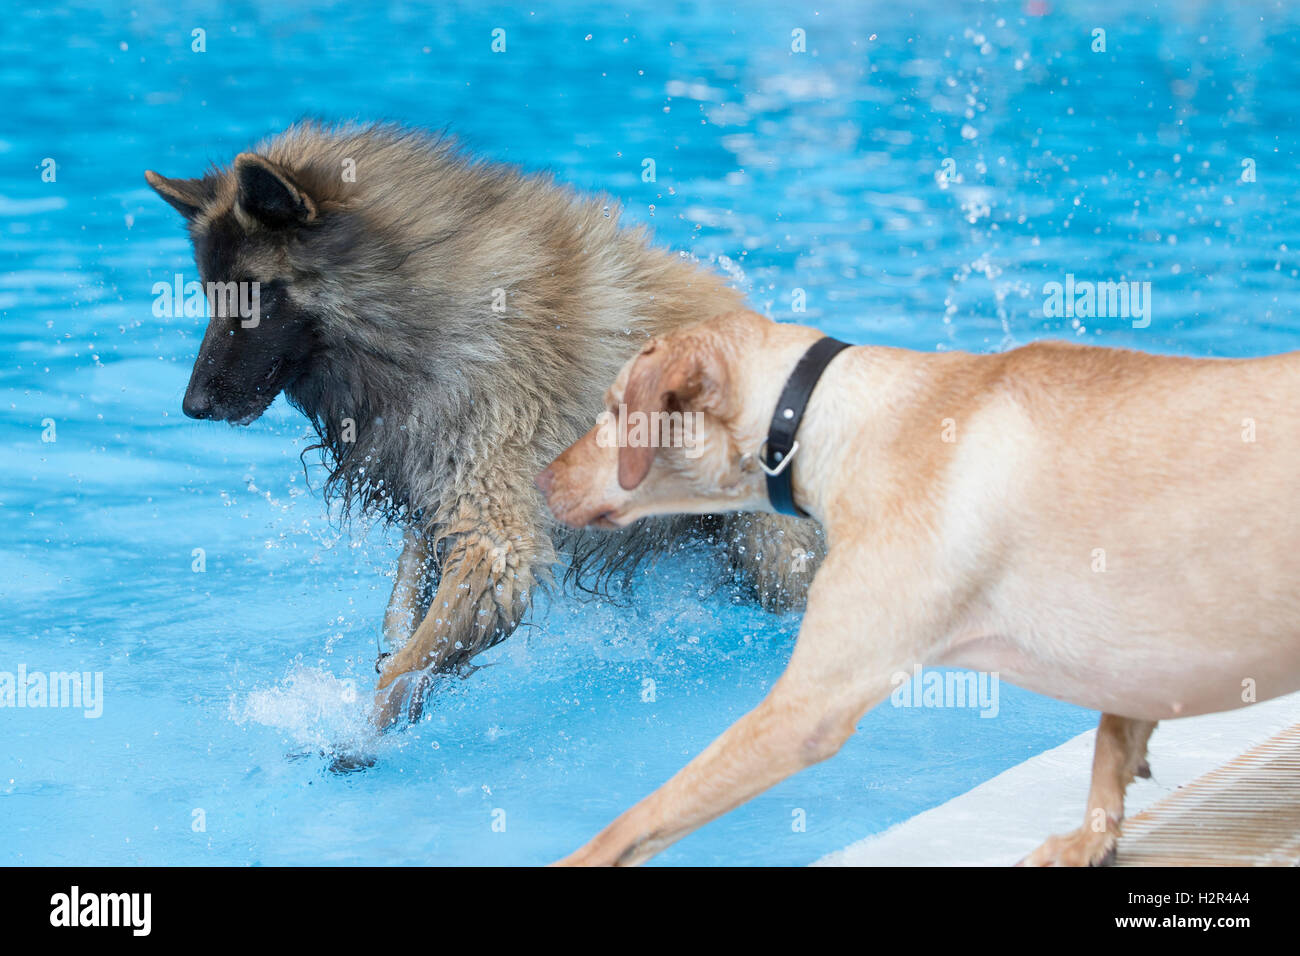 Two dogs running in swimming pool, blue water - Stock Image